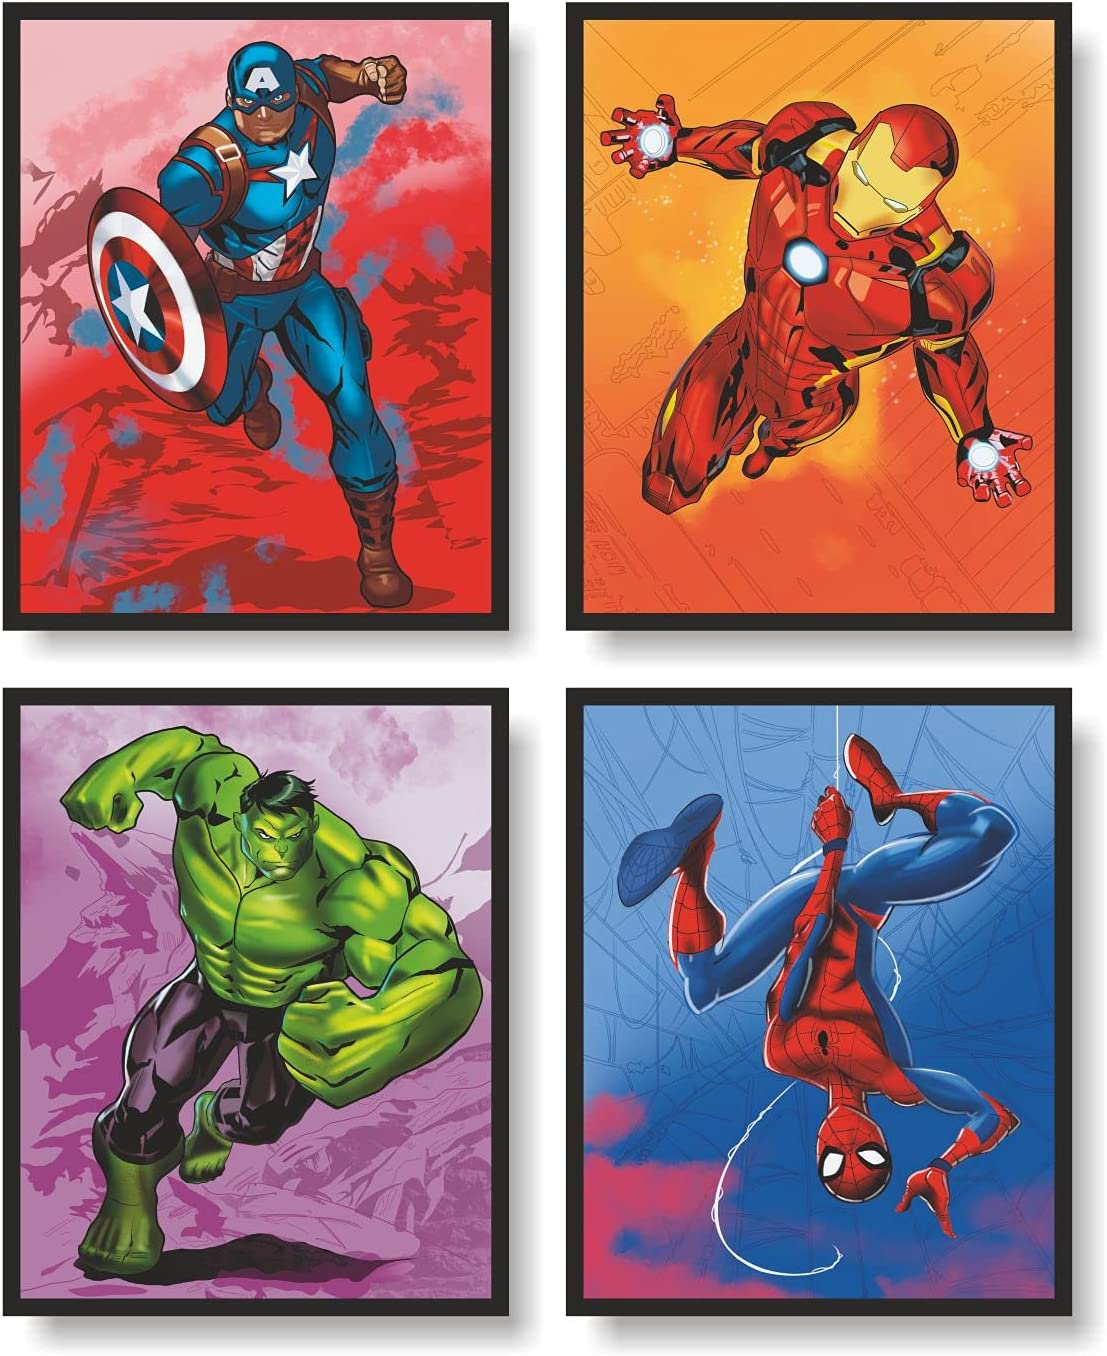 Avengers Superheroes Wall Decor Poster Prints, Superheros Watercolor Poster, Avengers Room Decor, Set of 4 FRAMELESS (8''x10''), Avengers Watercolor Poster, Avengers room decor for boys, Superheroes poster, Avengers prints, Avengers Room Decorations, Hulk Poster, Ironman Poster, Spiderman Poster, Captain America Poster, Superheroes Wall Art, Avengers Poster, Posters For Boys Room, Avengers Decorations, Avengers Decor, Superheroes Decorations, Posters For Girls Room, Superheroes Decor,